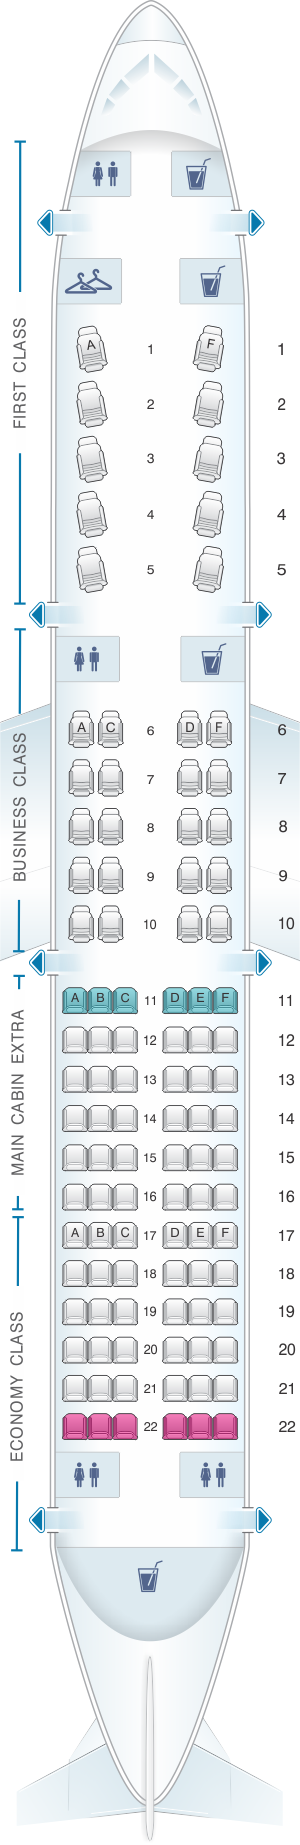 Seat map for American Airlines Airbus A321 Transcontinental